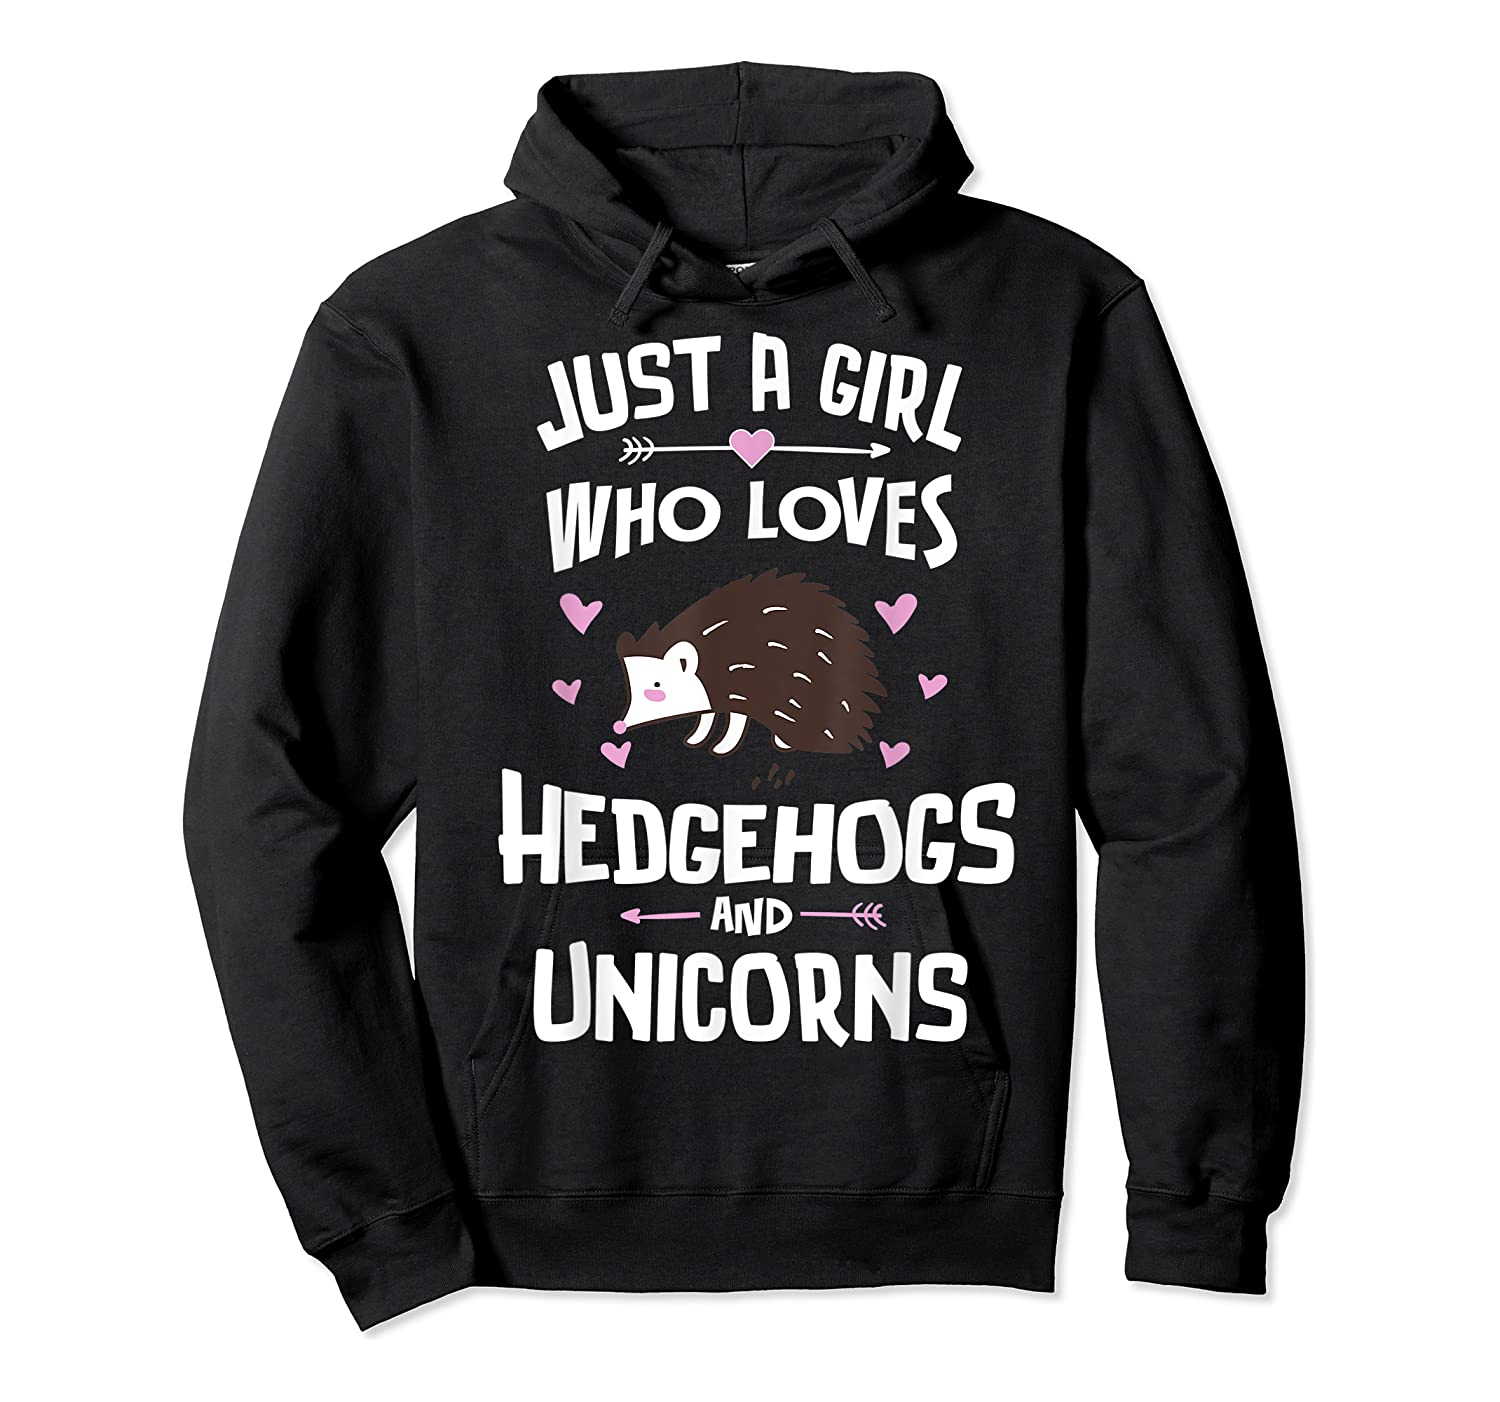 Just A Girl Who Loves Hedgehogs And Unicorns Gift Shirts Unisex Pullover Hoodie